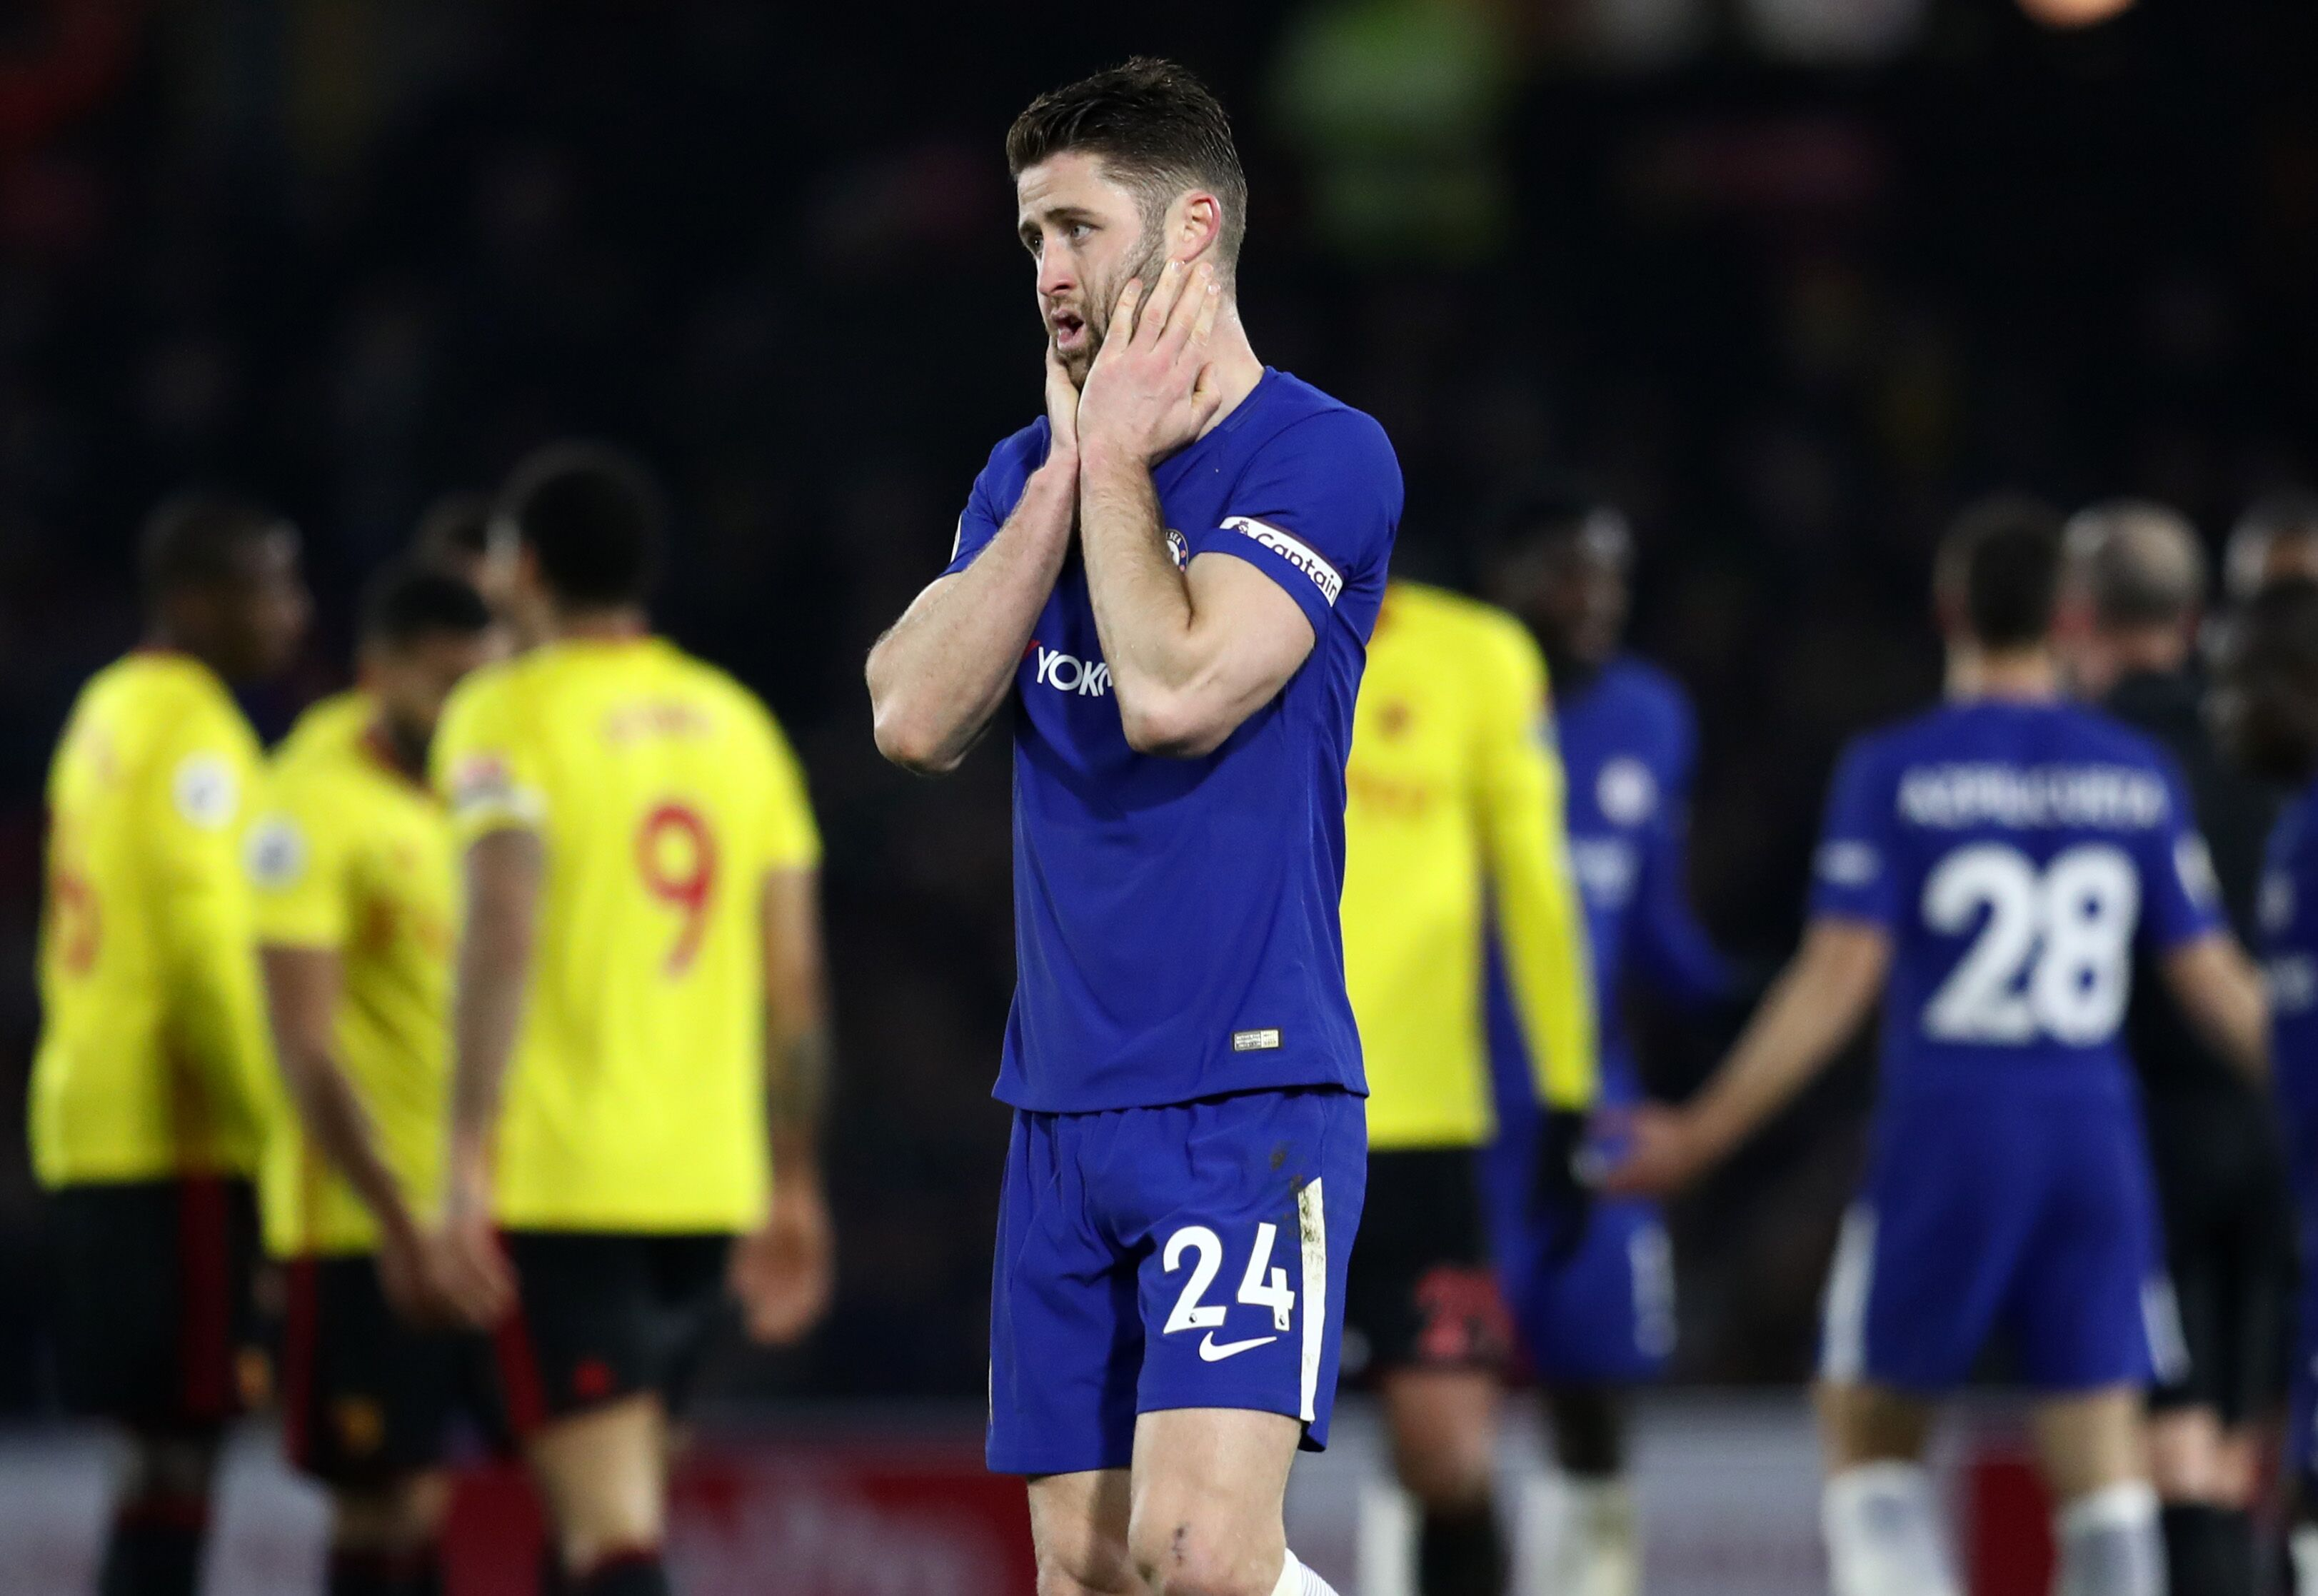 Chelsea: It's unlikely that the big debate will be resolved soon without weight - The Pride of London